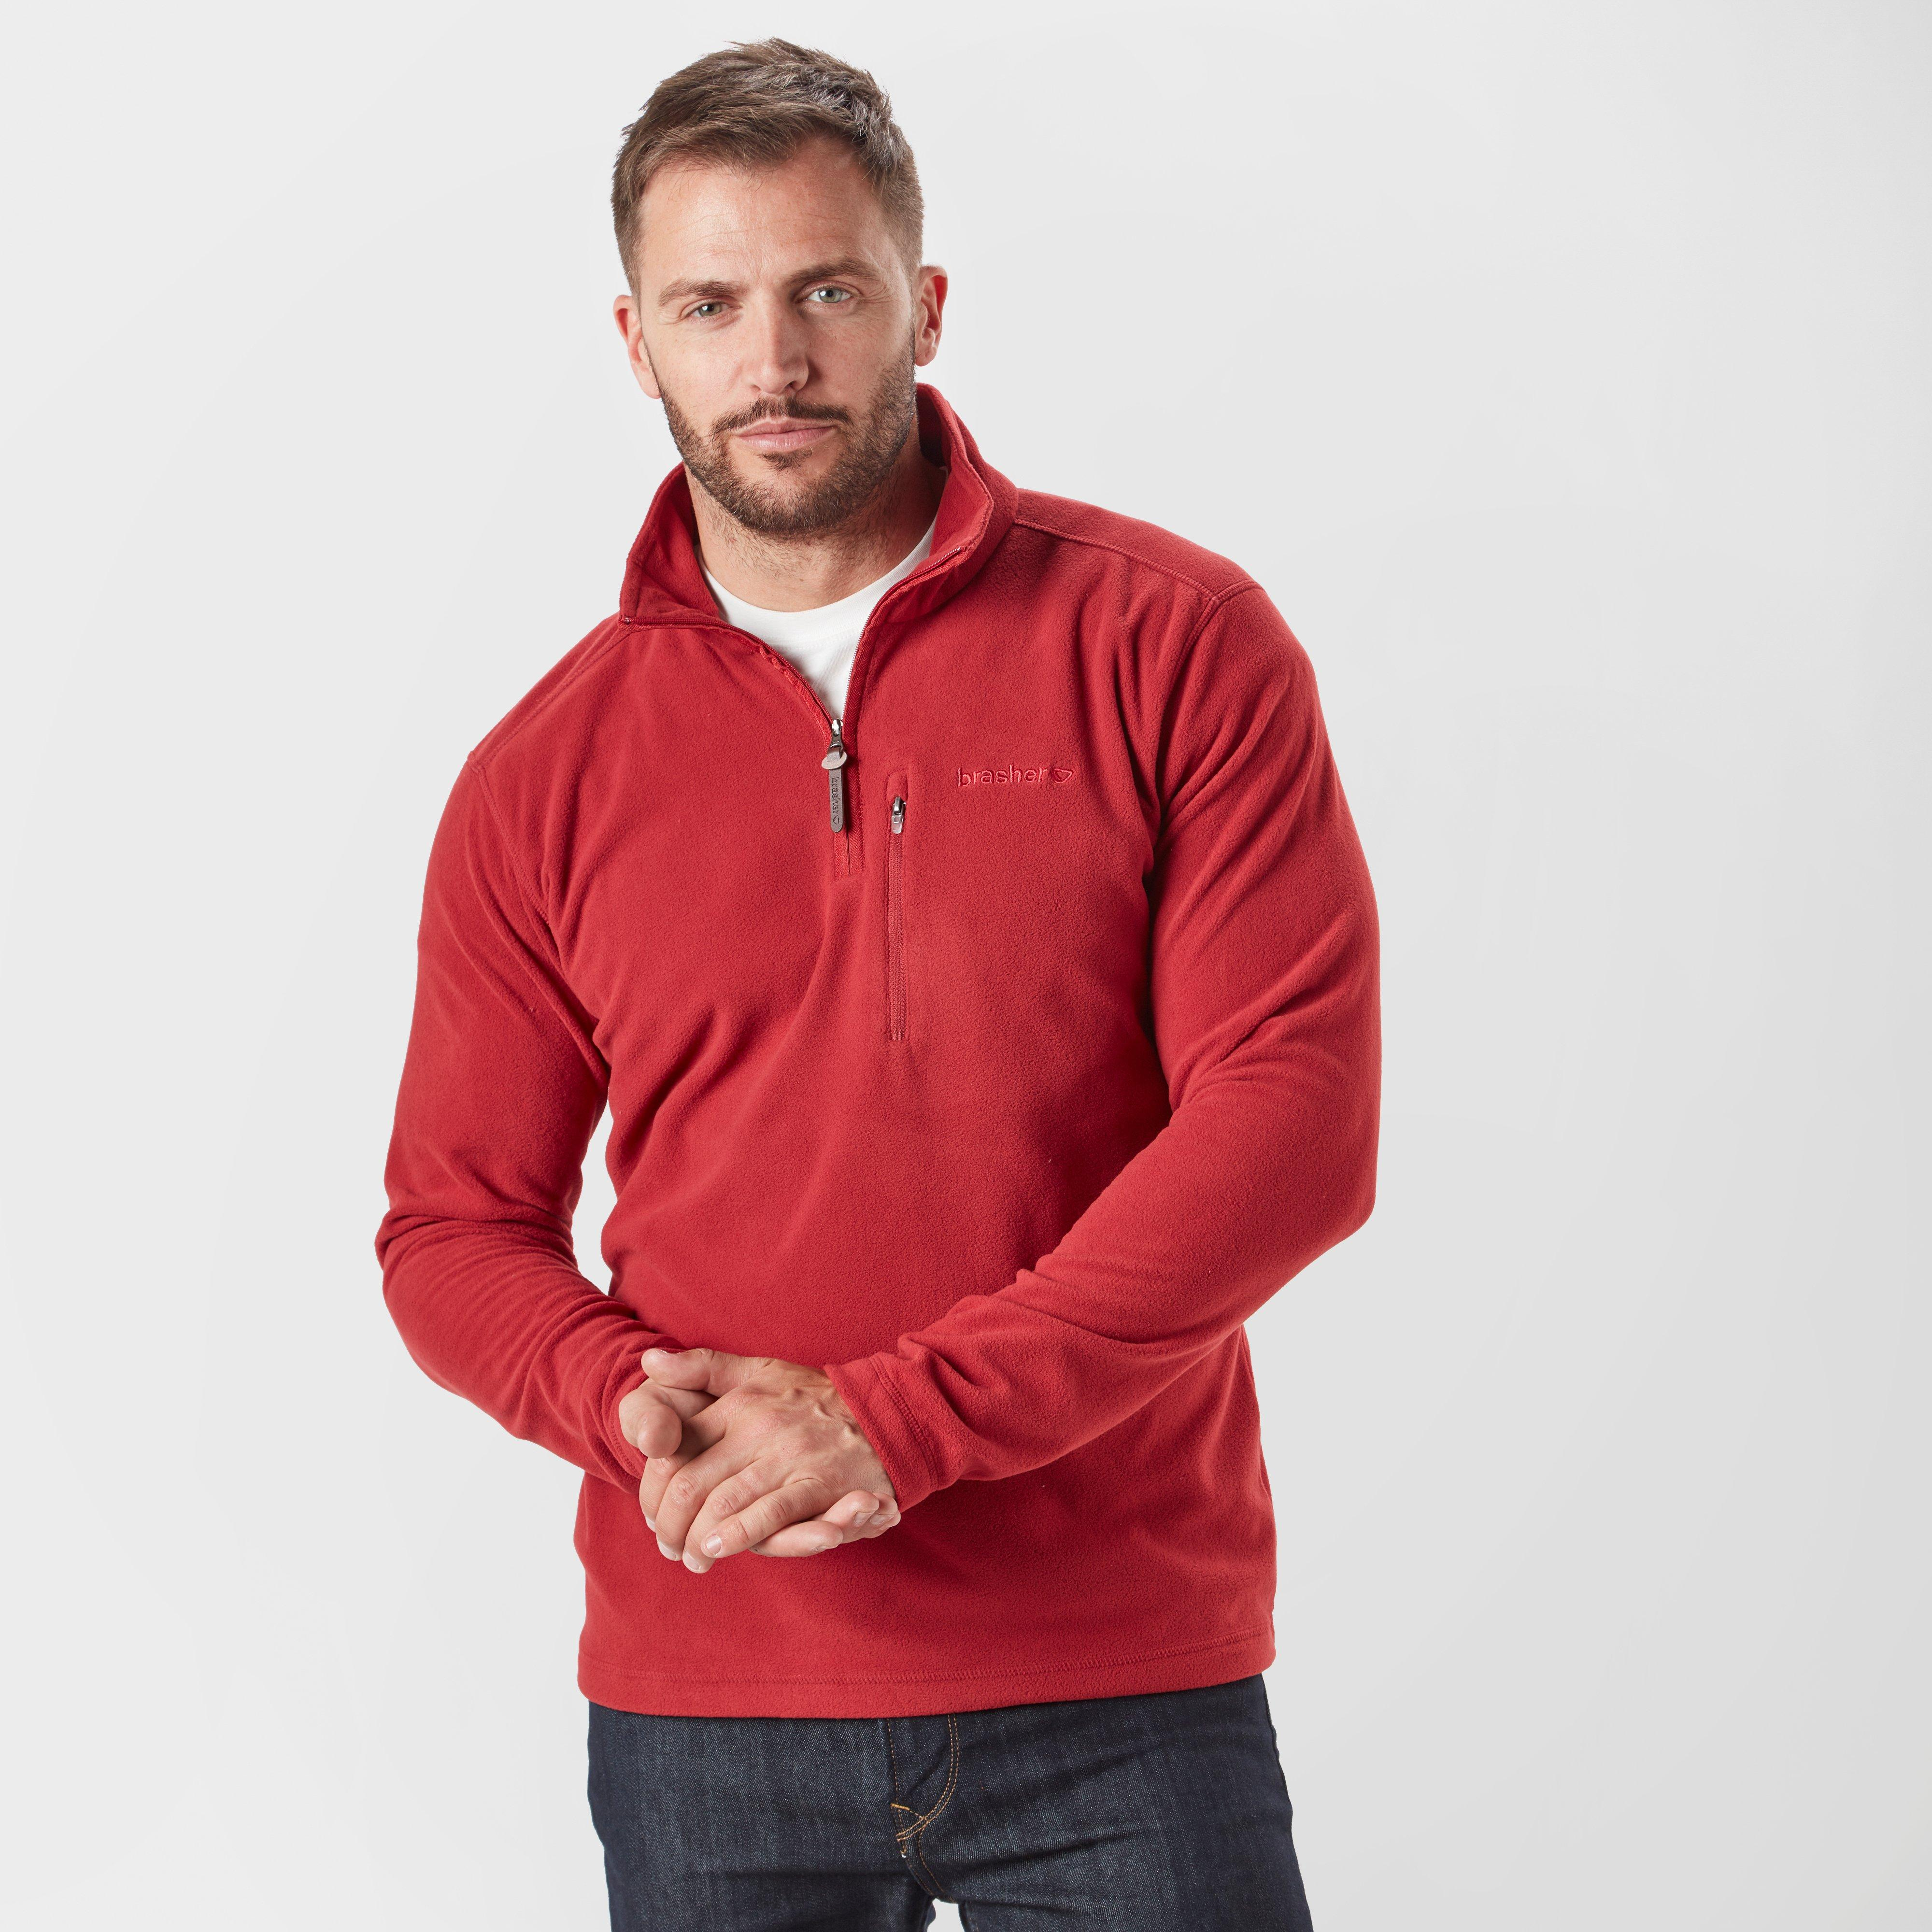 Brasher Mens Bleaberry Half-zip Fleece - Red/red  Red/red